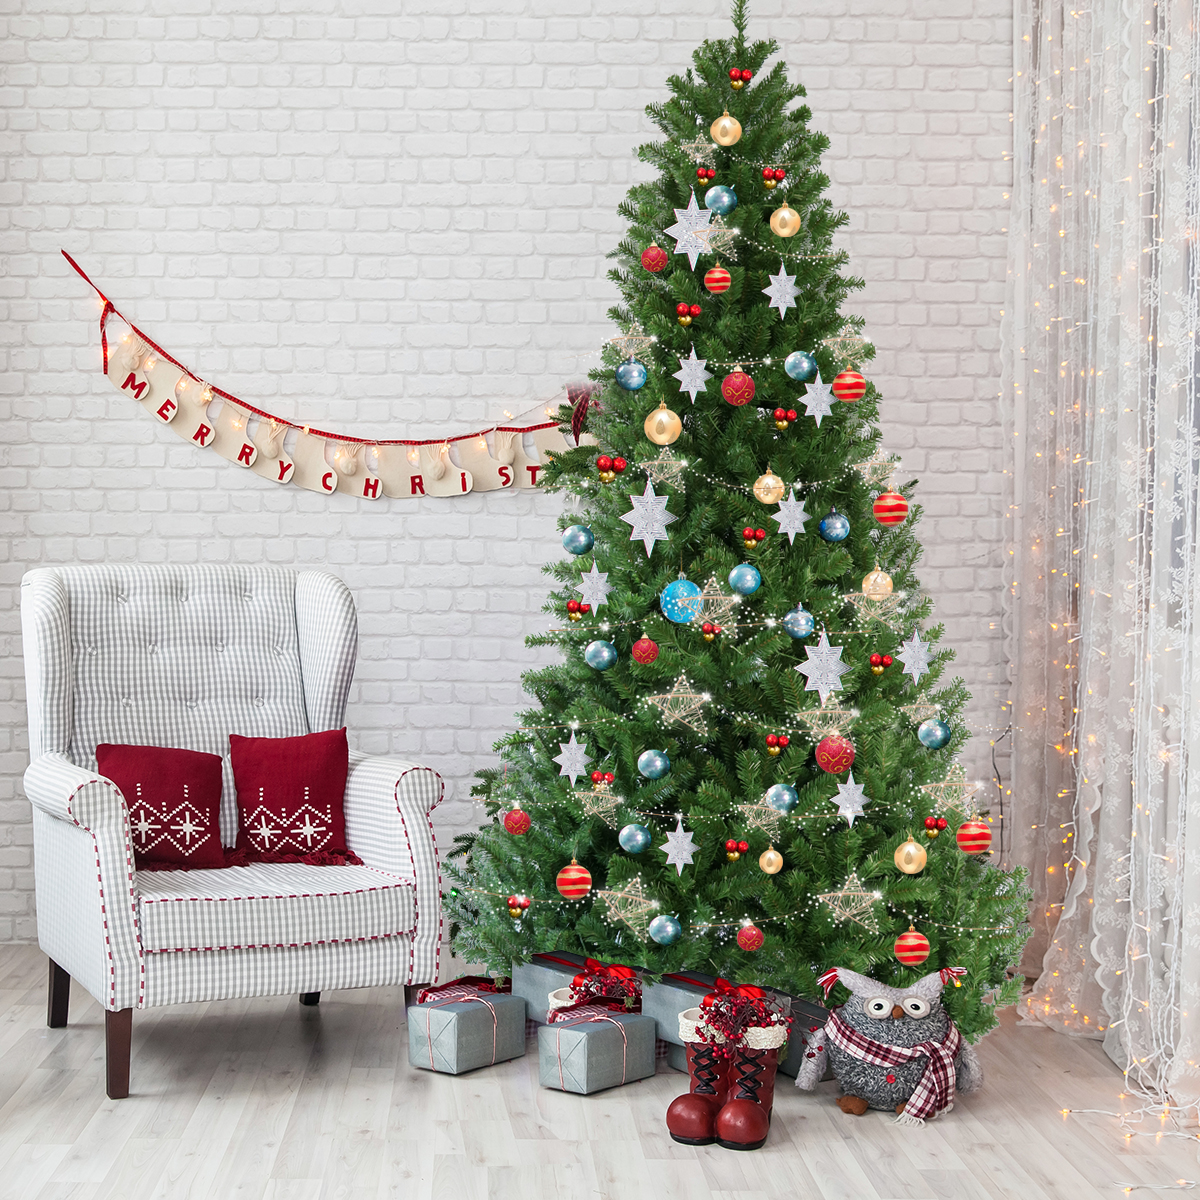 Gymax 7.5' Pre-Lit LED Light Christmas Tree Artificial PVC with Stand Holiday Decor - image 7 of 7